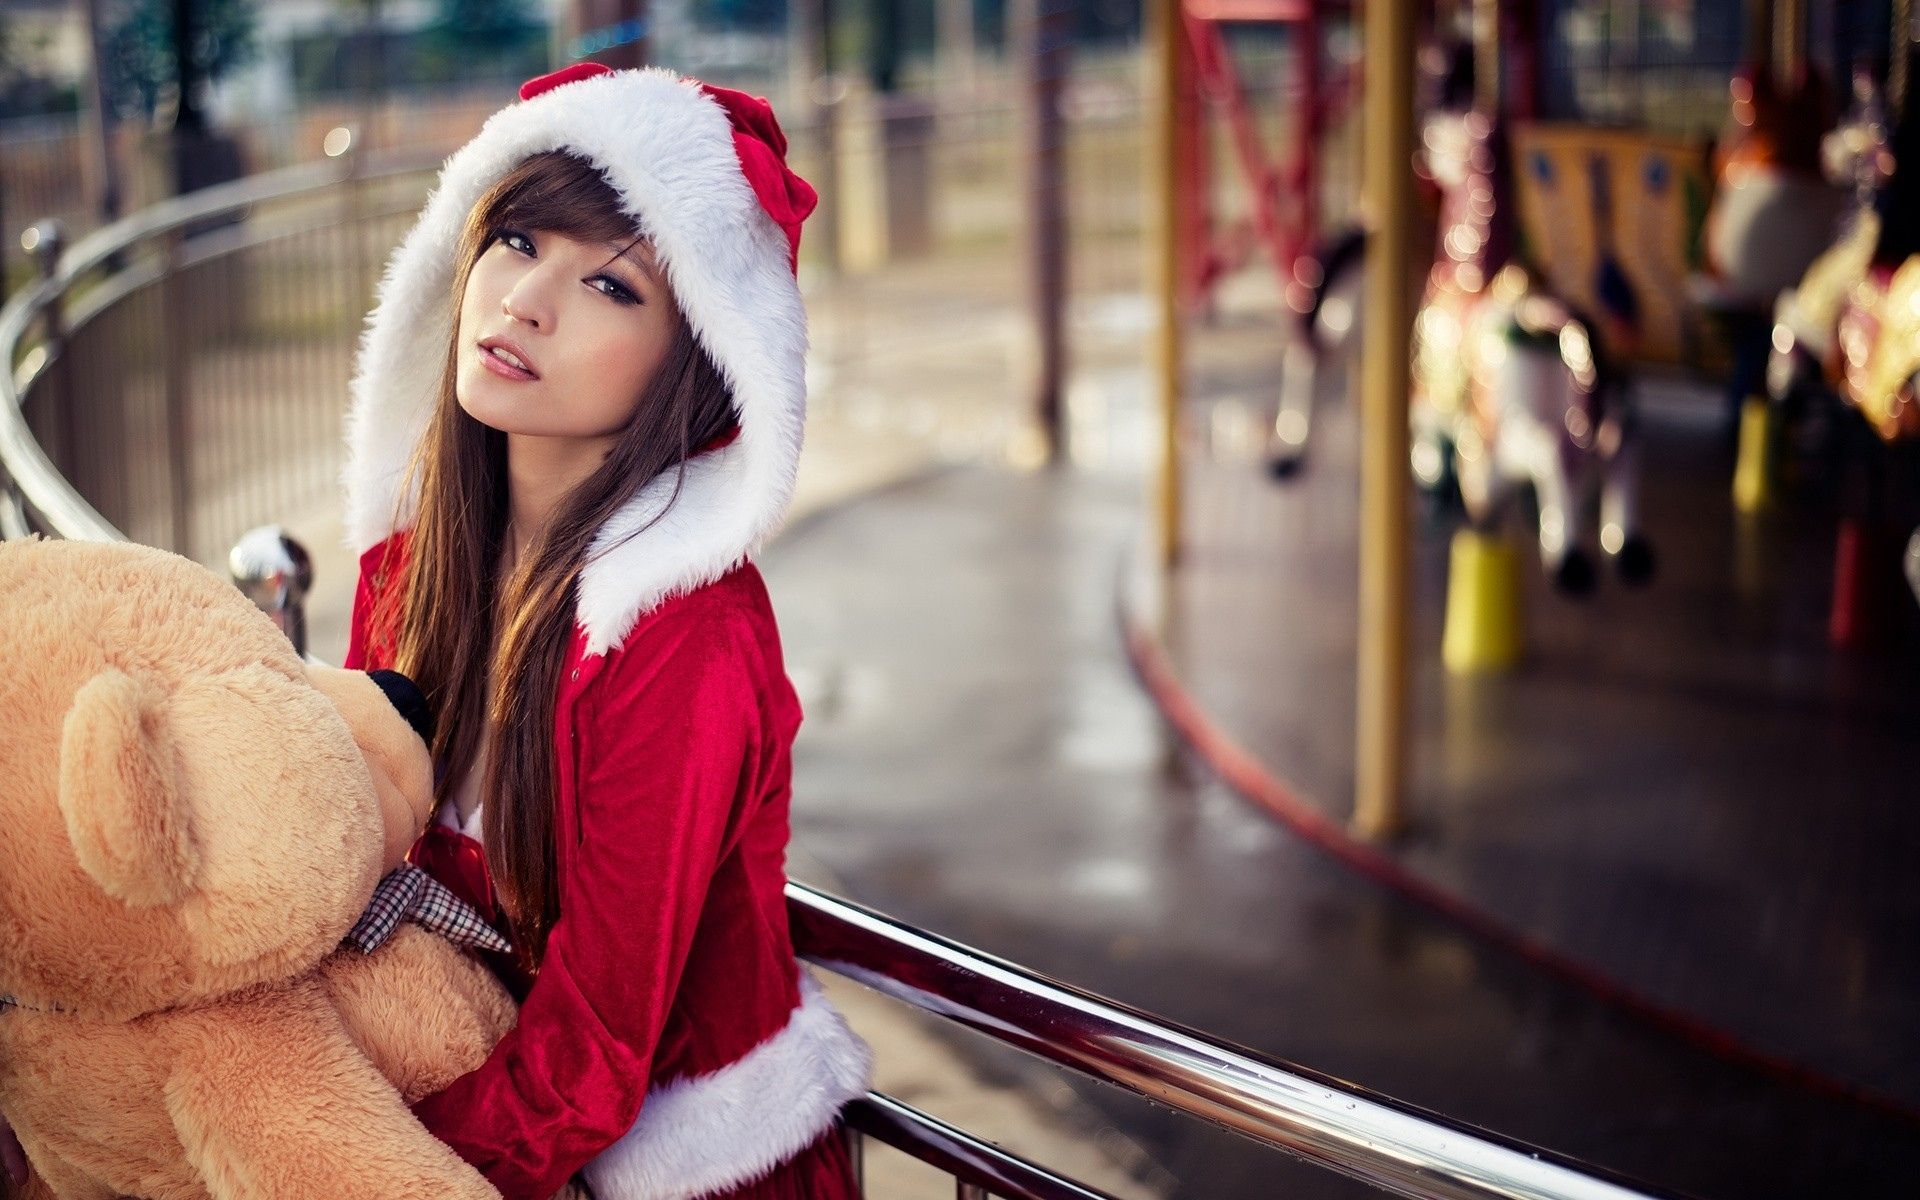 Asian Date | Creative Ways To Send Your Christmas Gifts When Online Dating